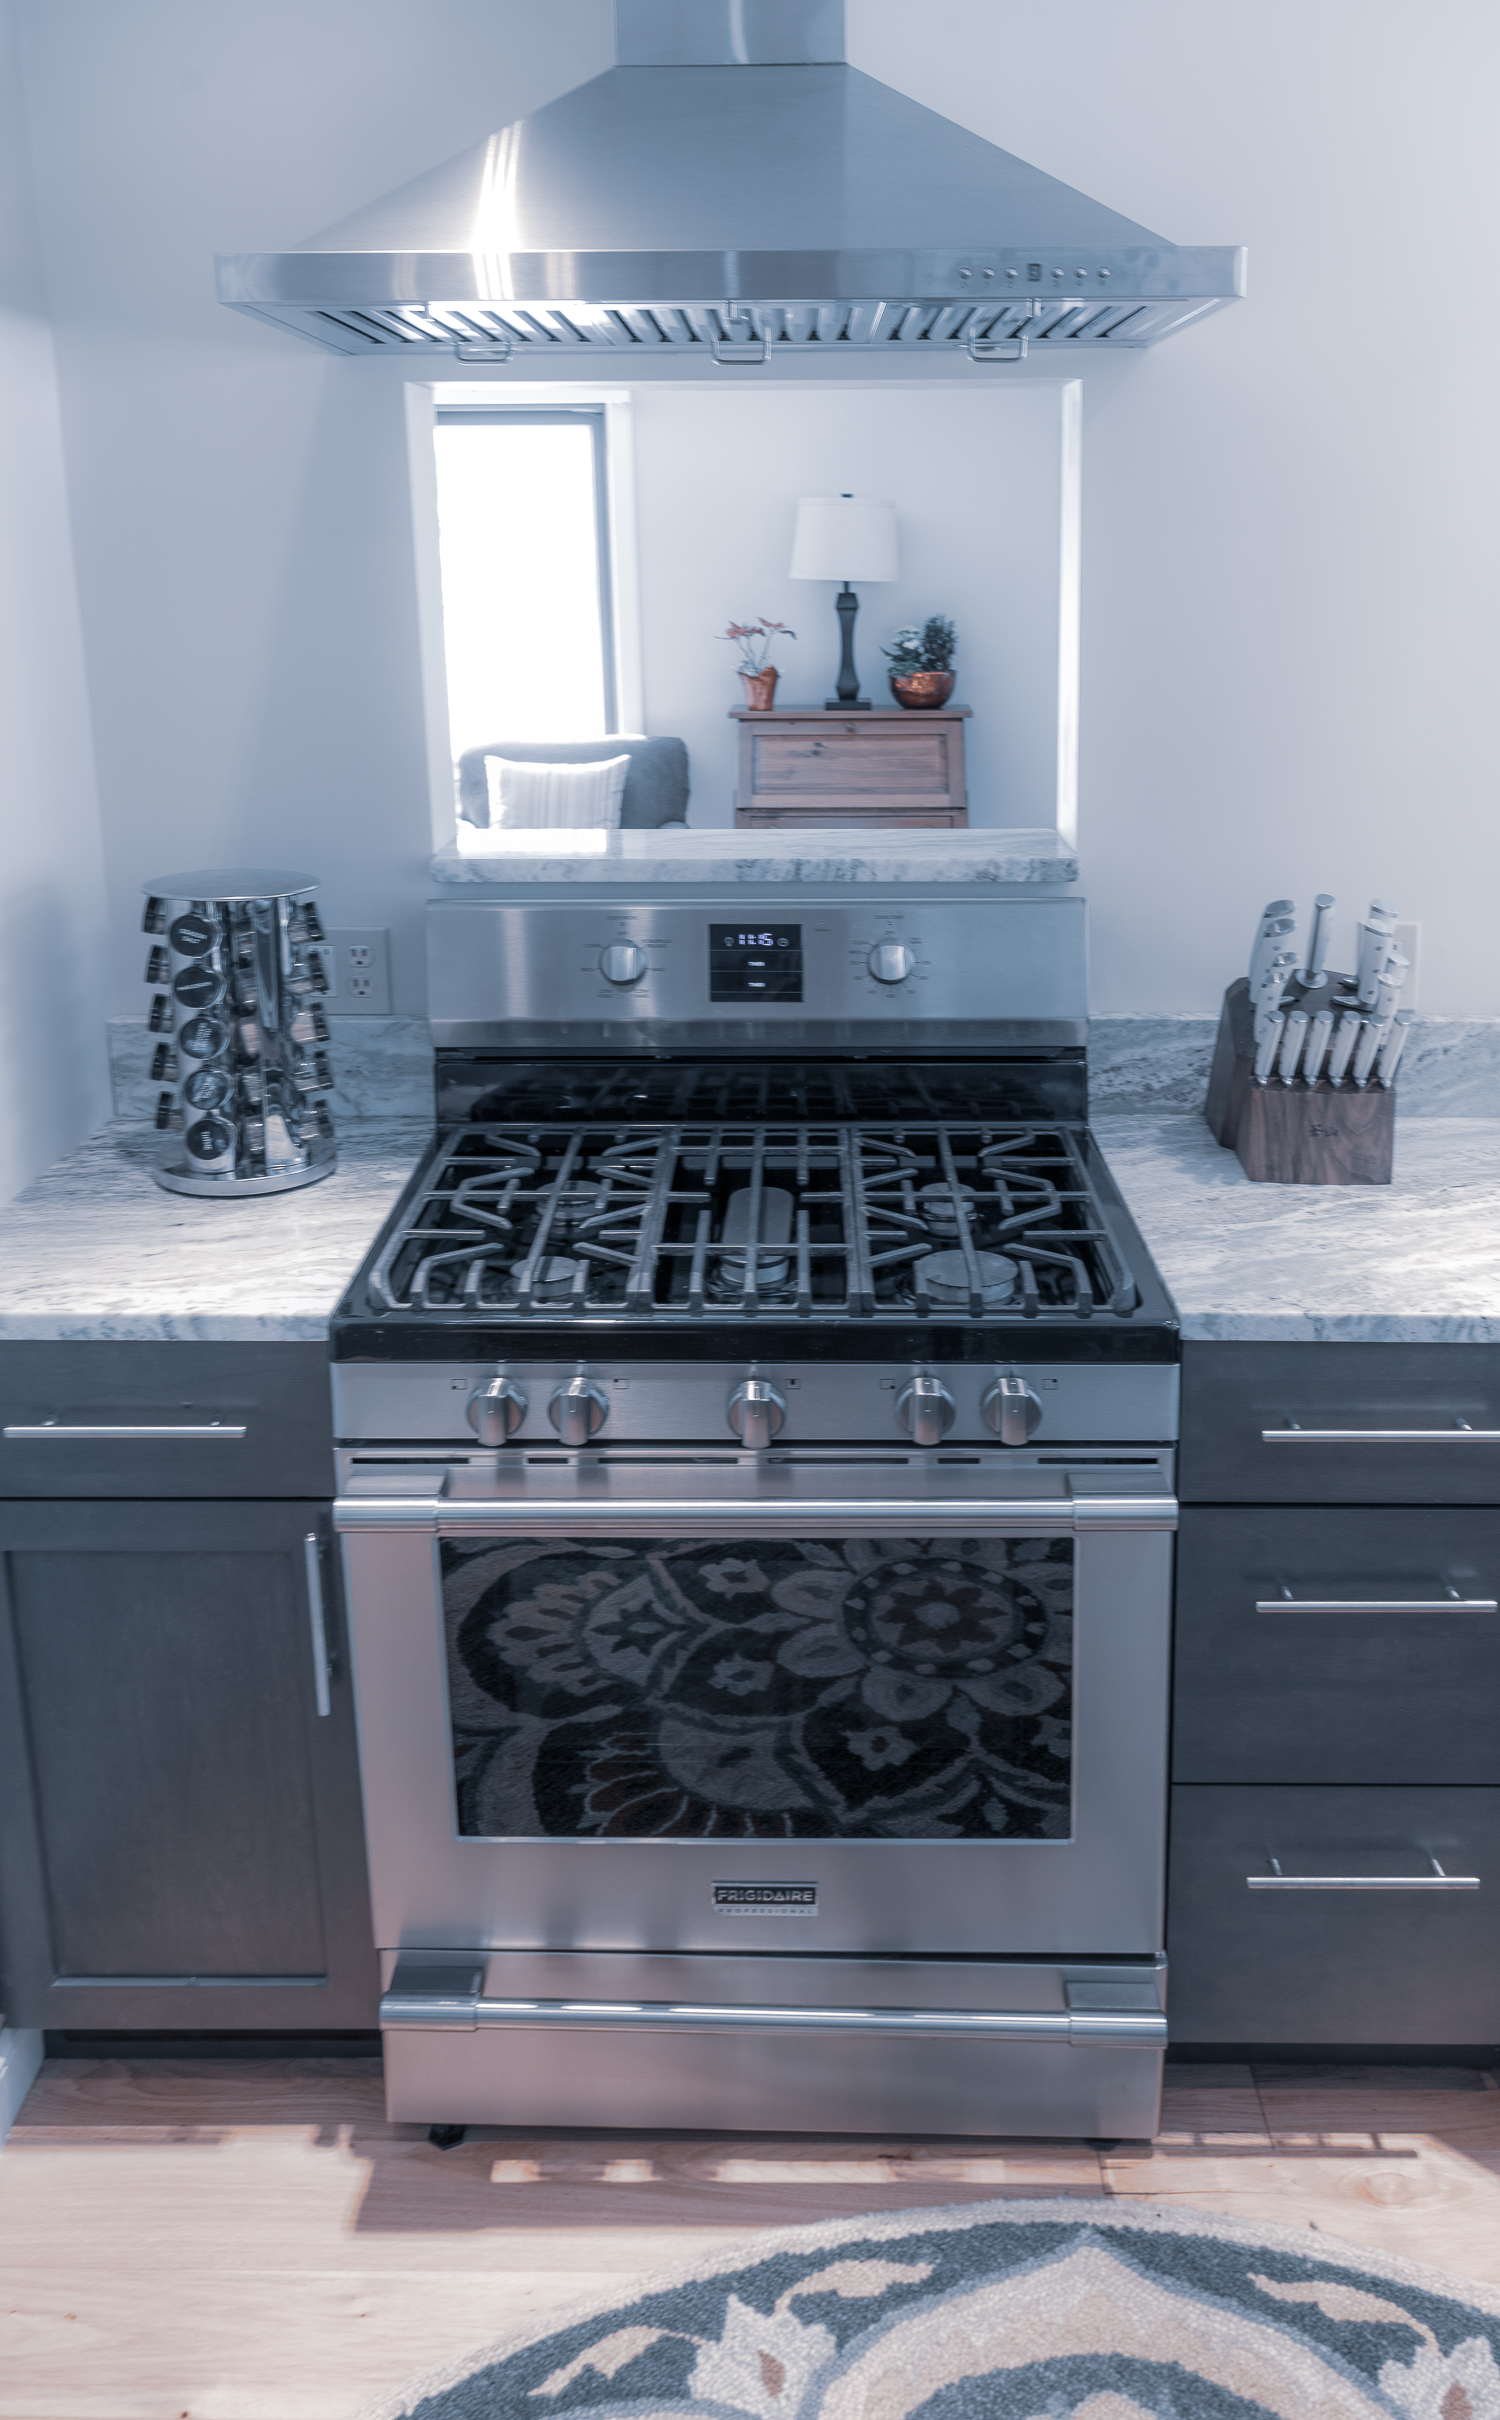 stove and oven.jpg